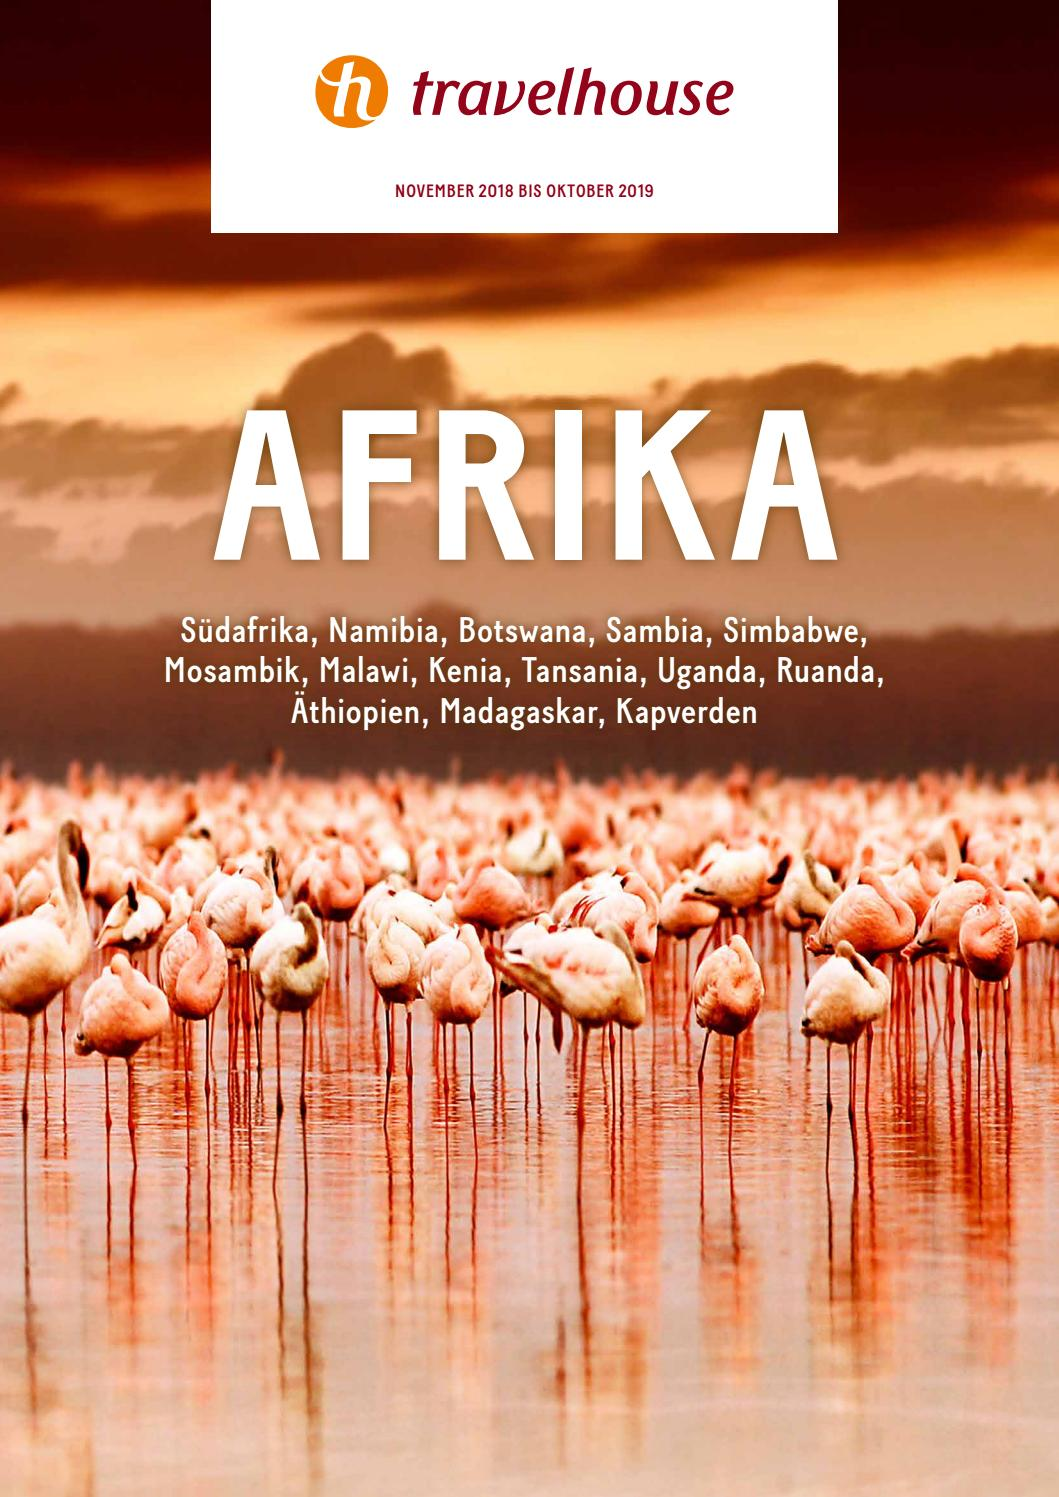 Travelhouse Afrika November 18 Bis Oktober 19 By Hotelplan Suisse Mtch Ag Issuu